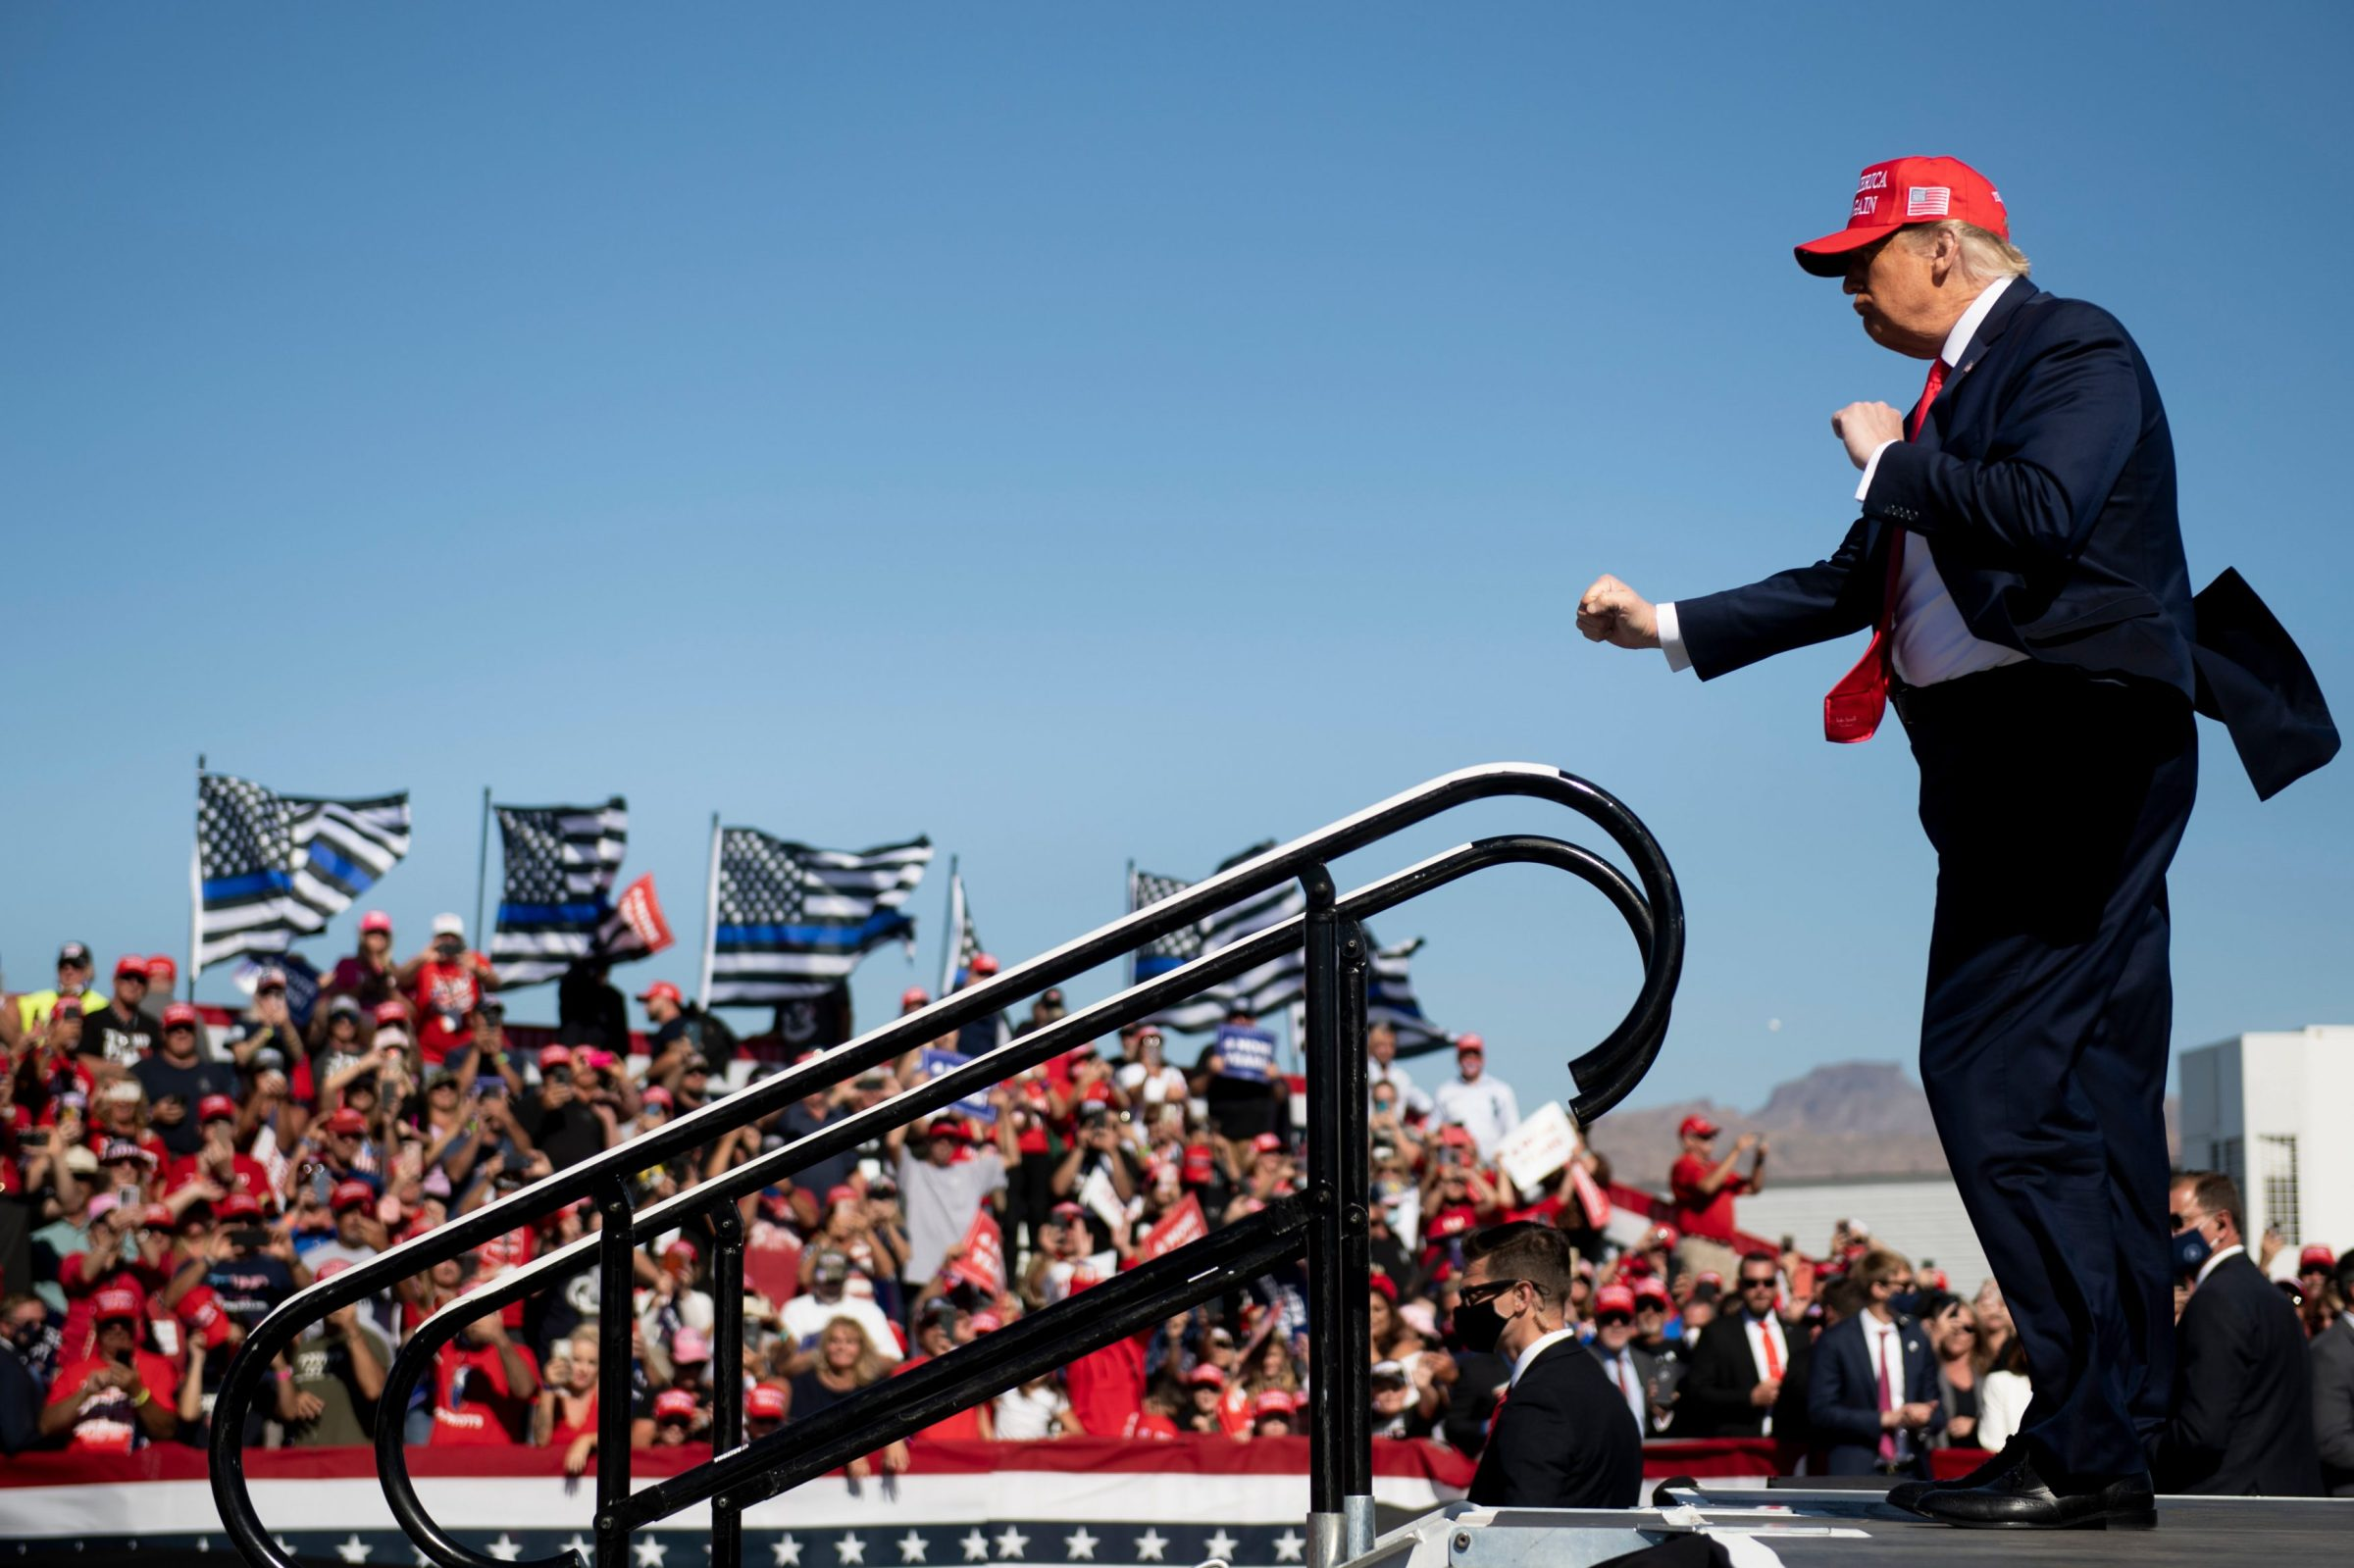 US President Donald Trump dances as he leaves after speaking during a Make America Great Again rally